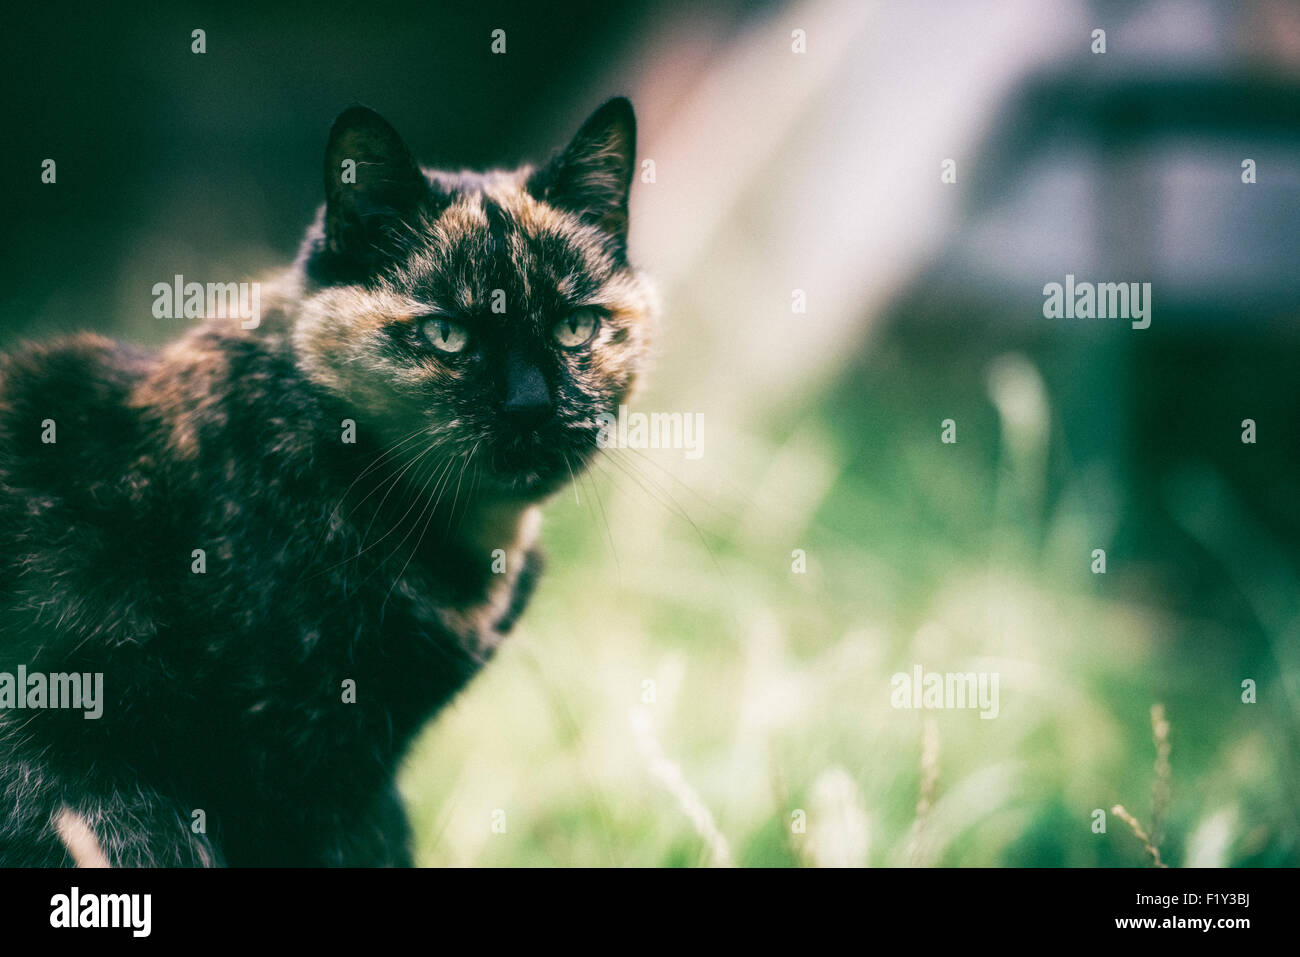 Film style grainy shot of domestic cat - Stock Image